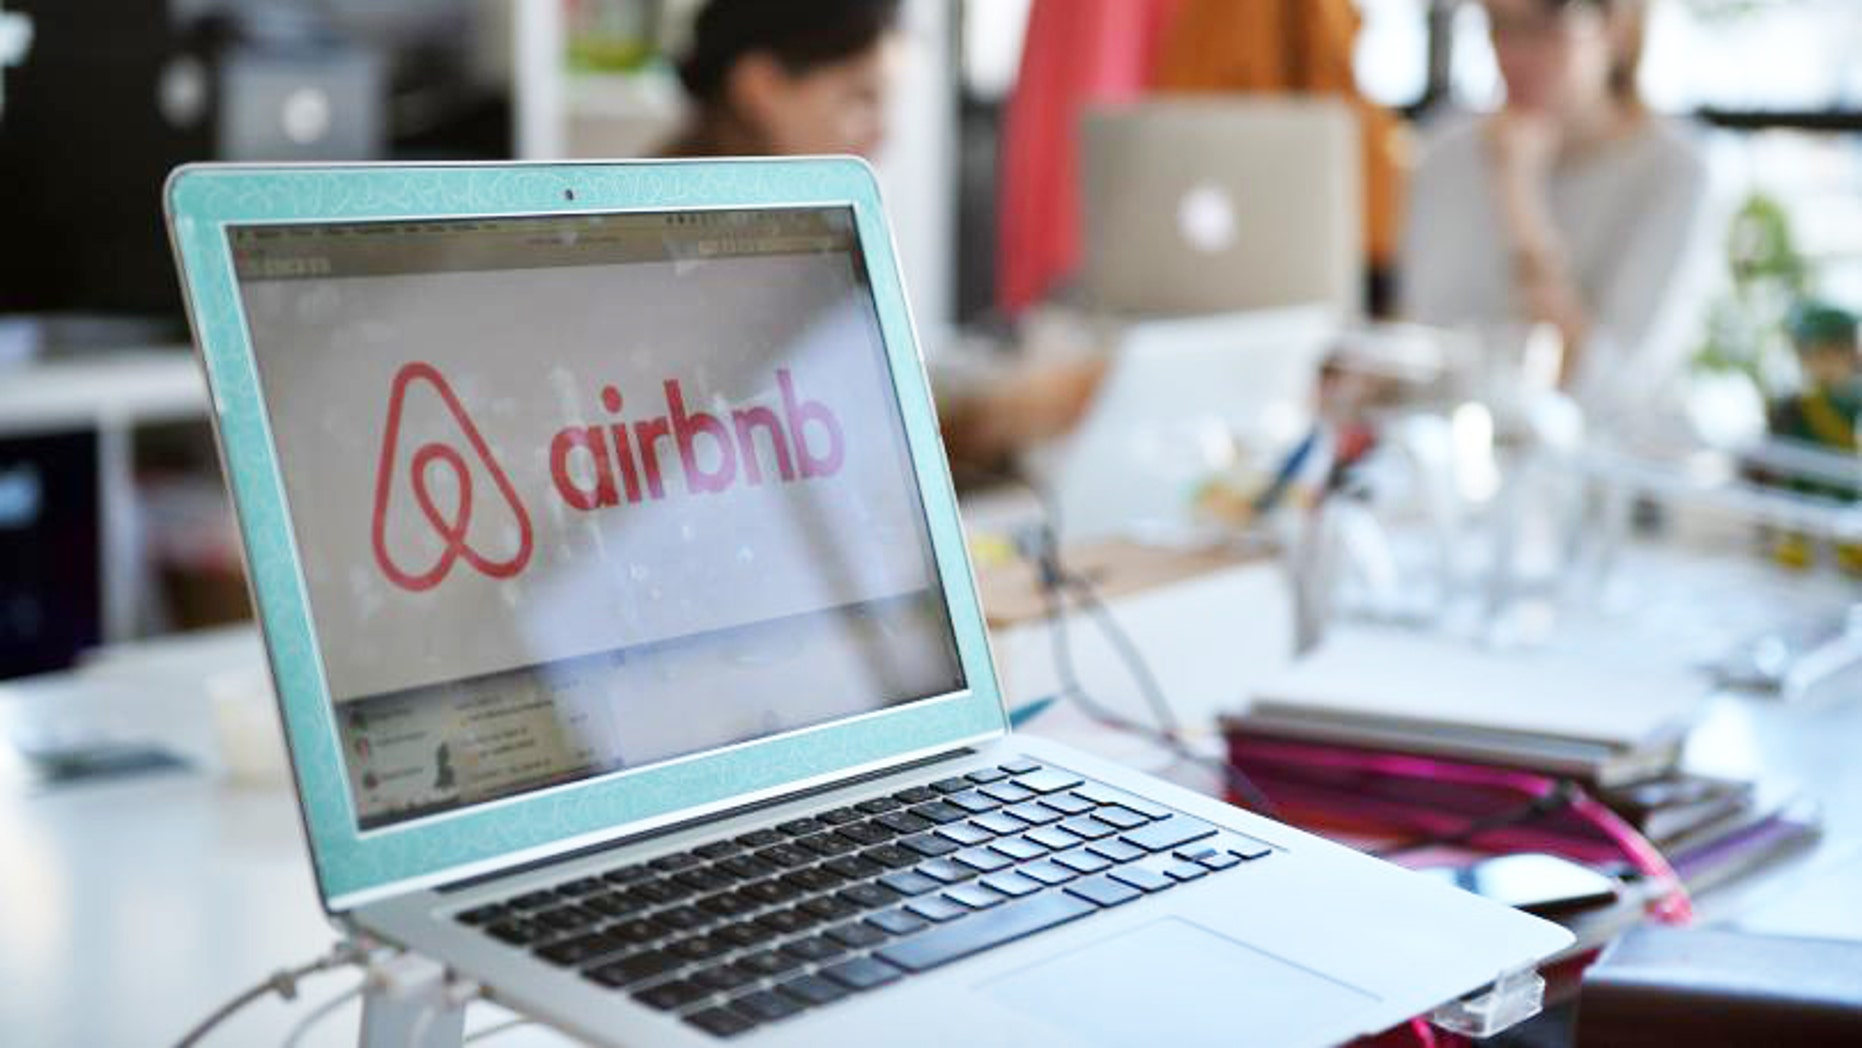 New York lawmakers announced a new bill Tuesday that would regulate Airbnb and other home-sharing sites within the state.